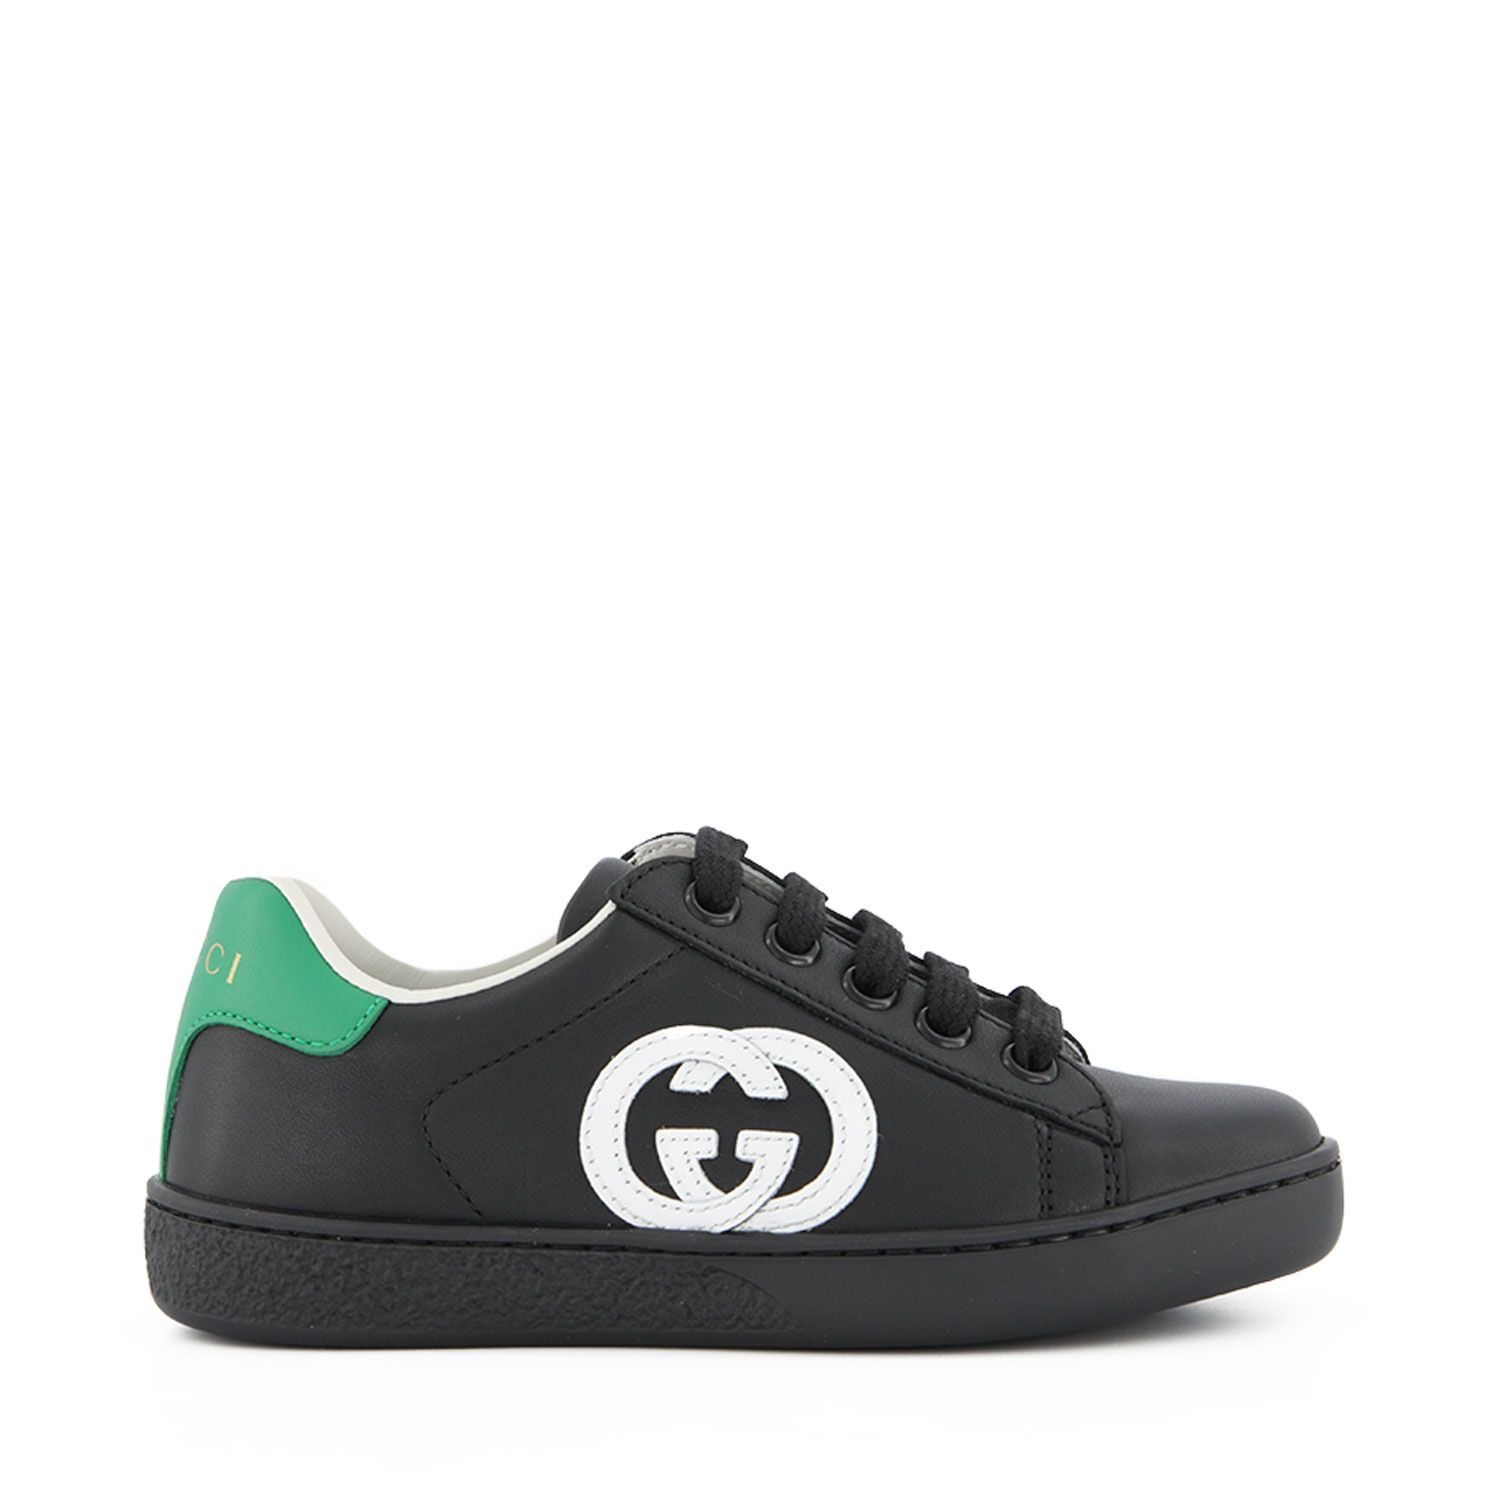 Picture of Gucci 647071 kids sneakers black